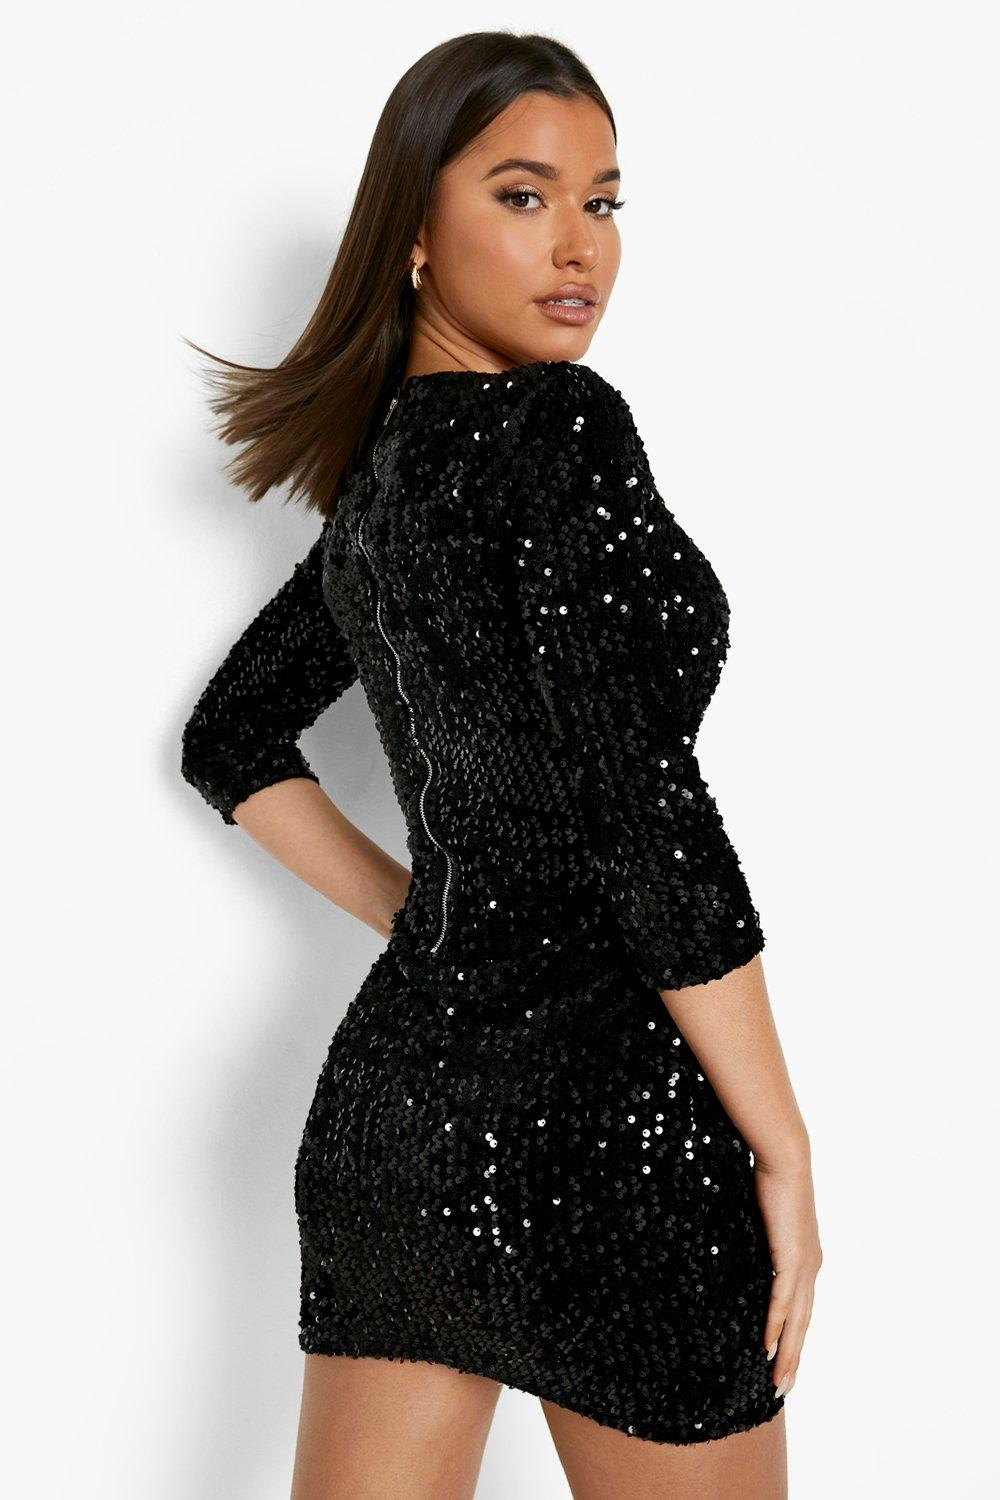 Plus-size women's sequin dresses for plus size women, including: Silver Sequin Bell Sleeve Dress White - Clearance, Geo-Sequin Front Pencil Skirt Black Combo - Clearance, Sequin Dresses for Plus Size Women.